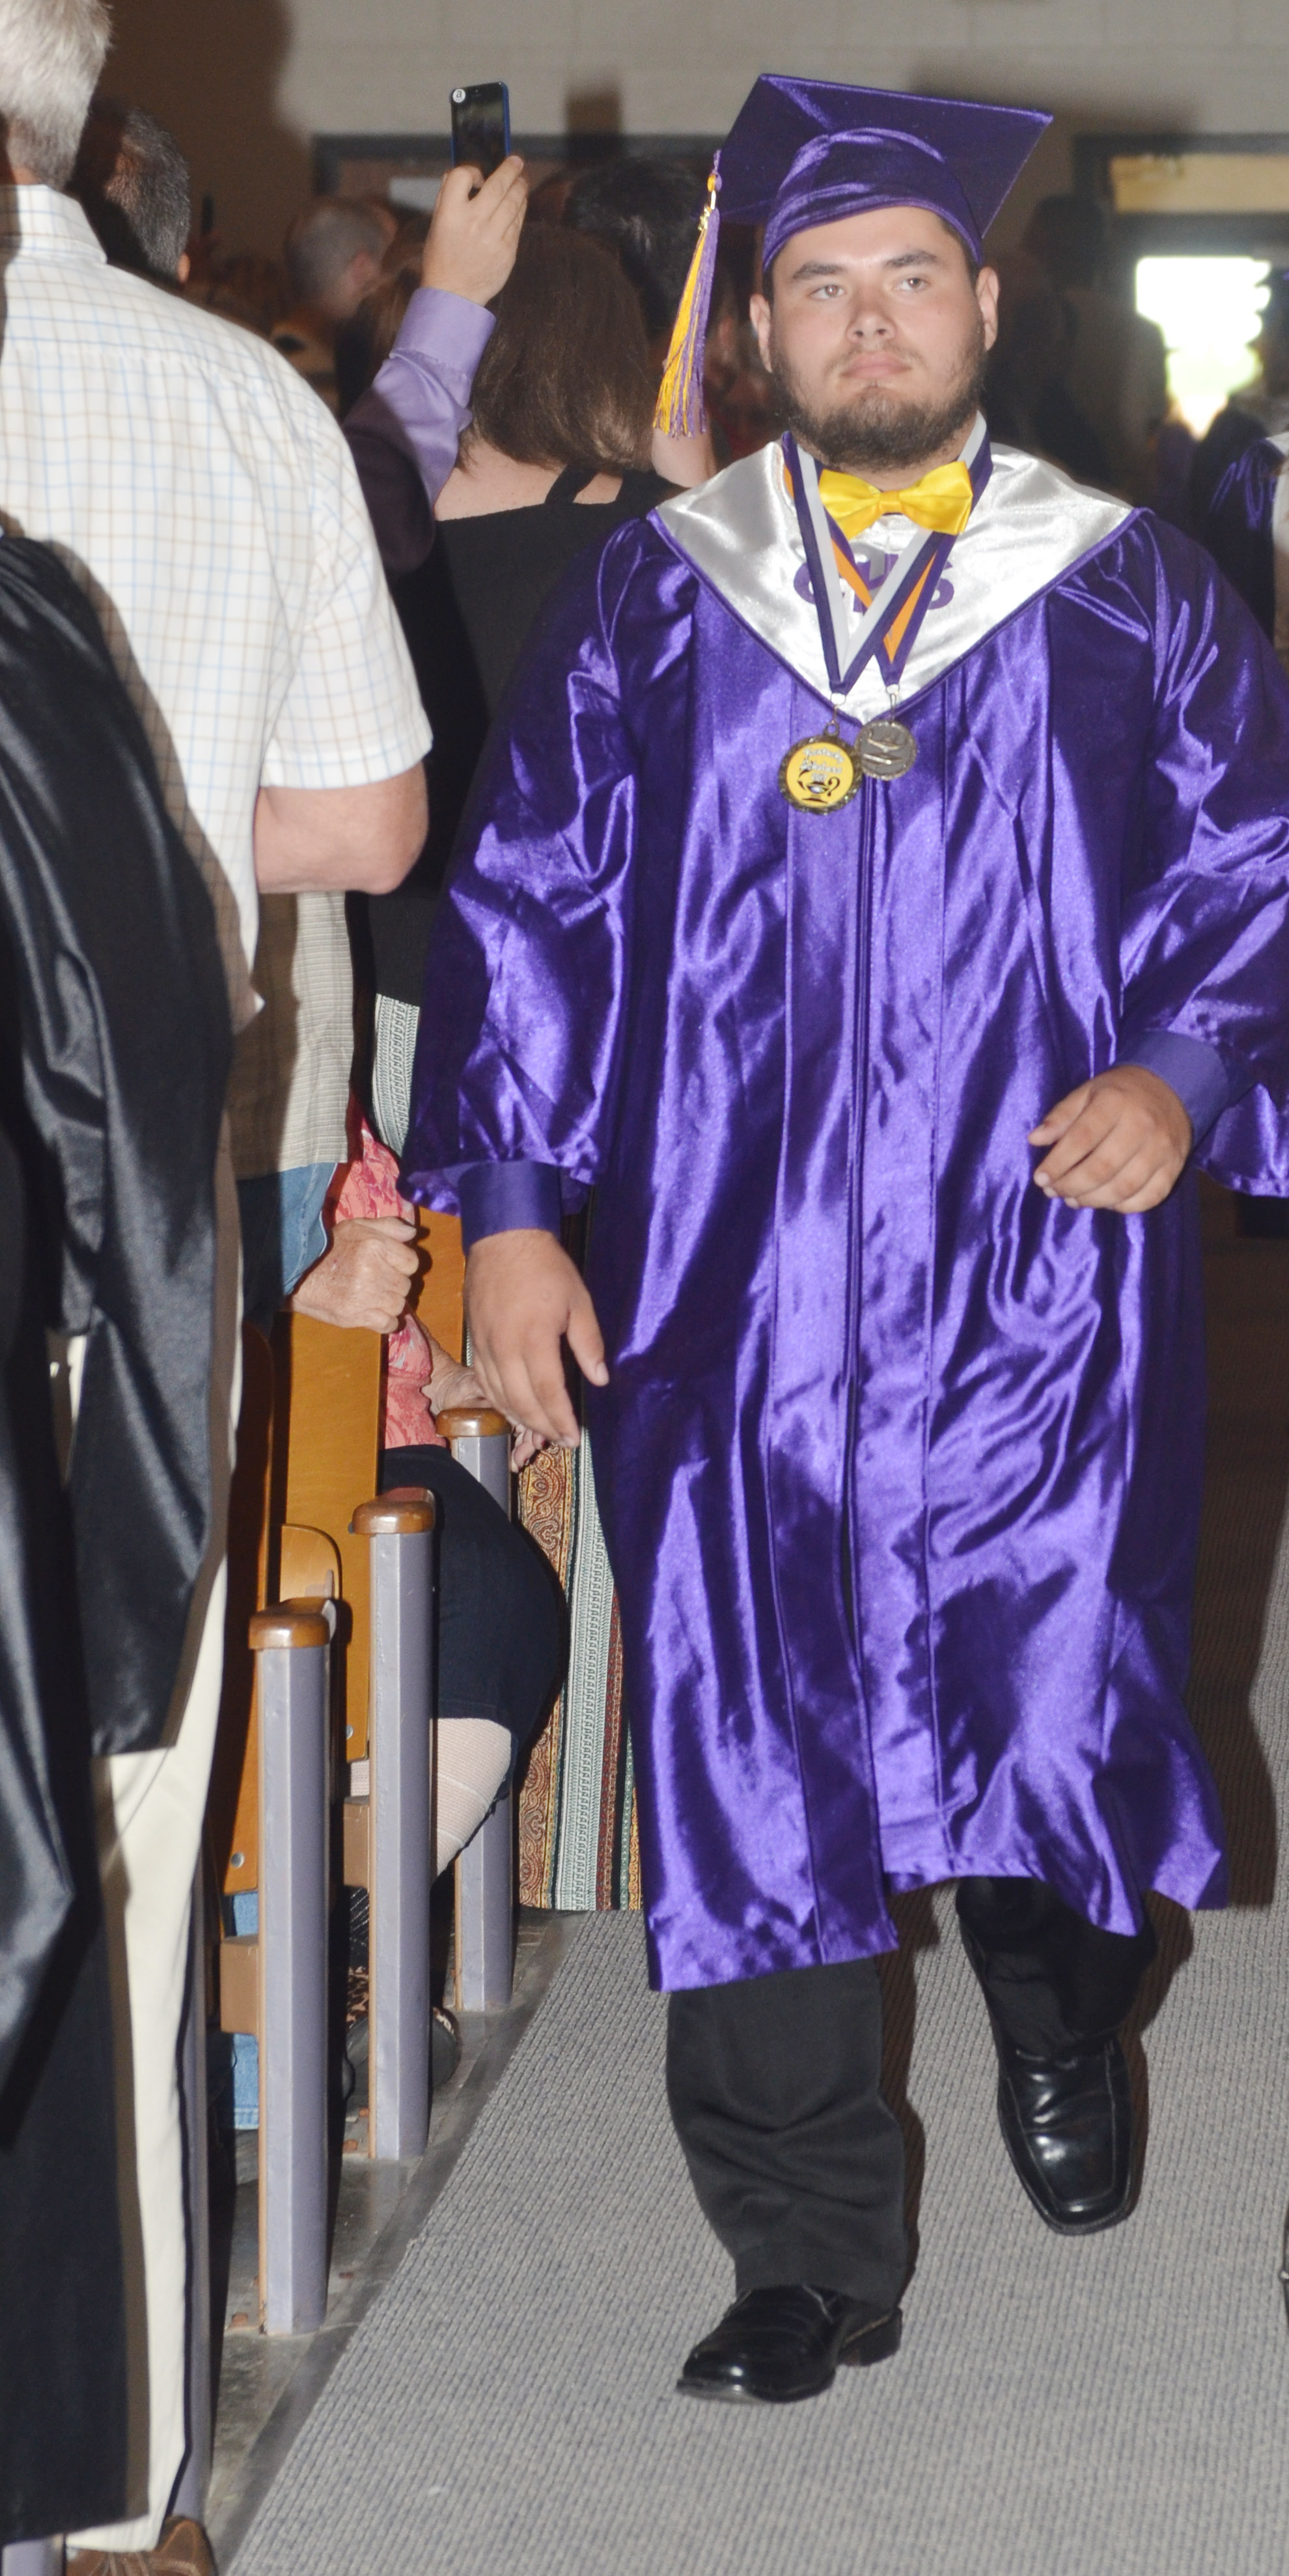 CHS senior Logan Brown walks to his seat.